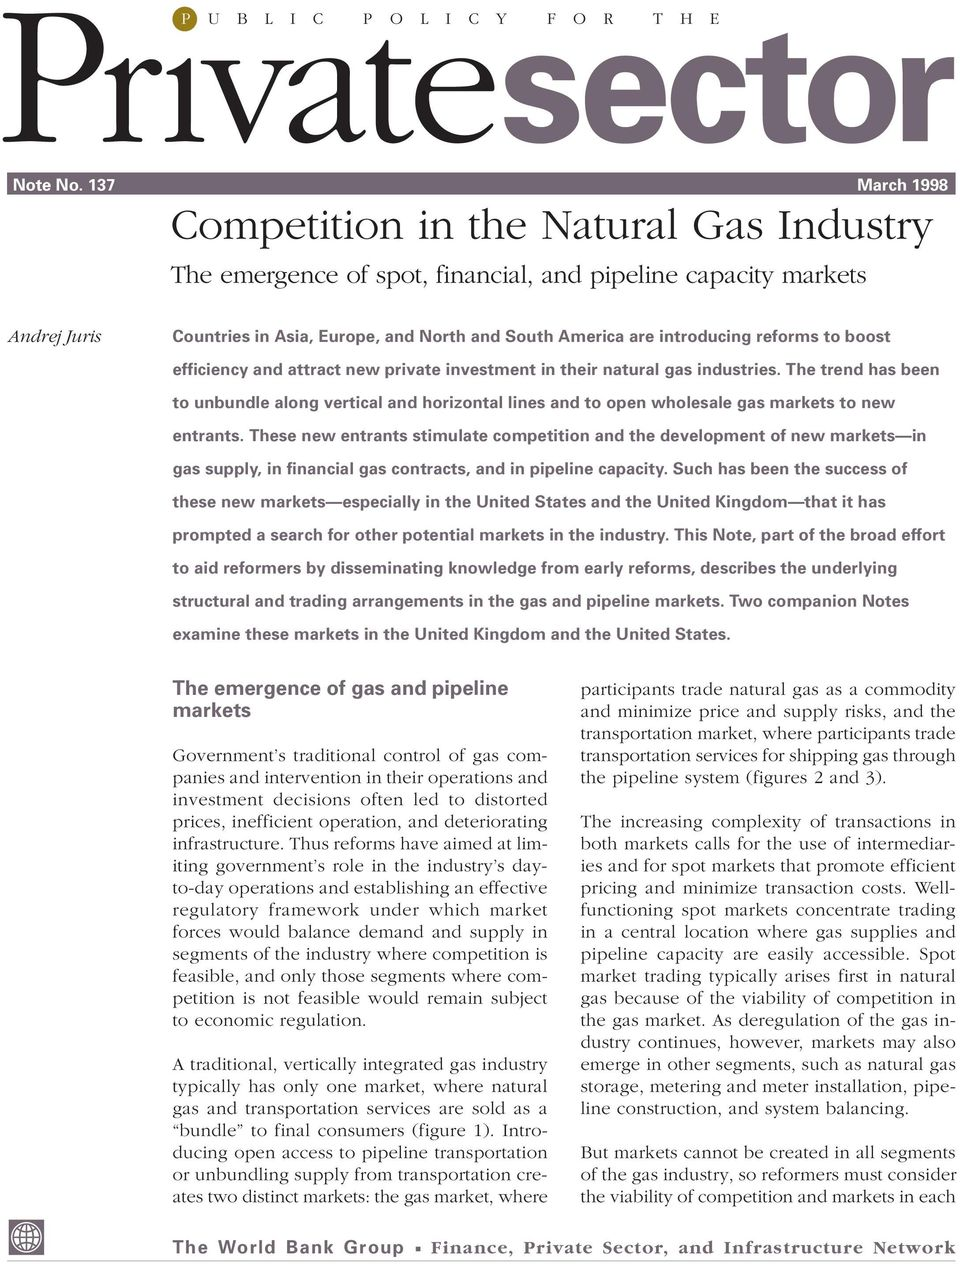 introducing reforms to boost efficiency and attract new private investment in their natural gas industries.